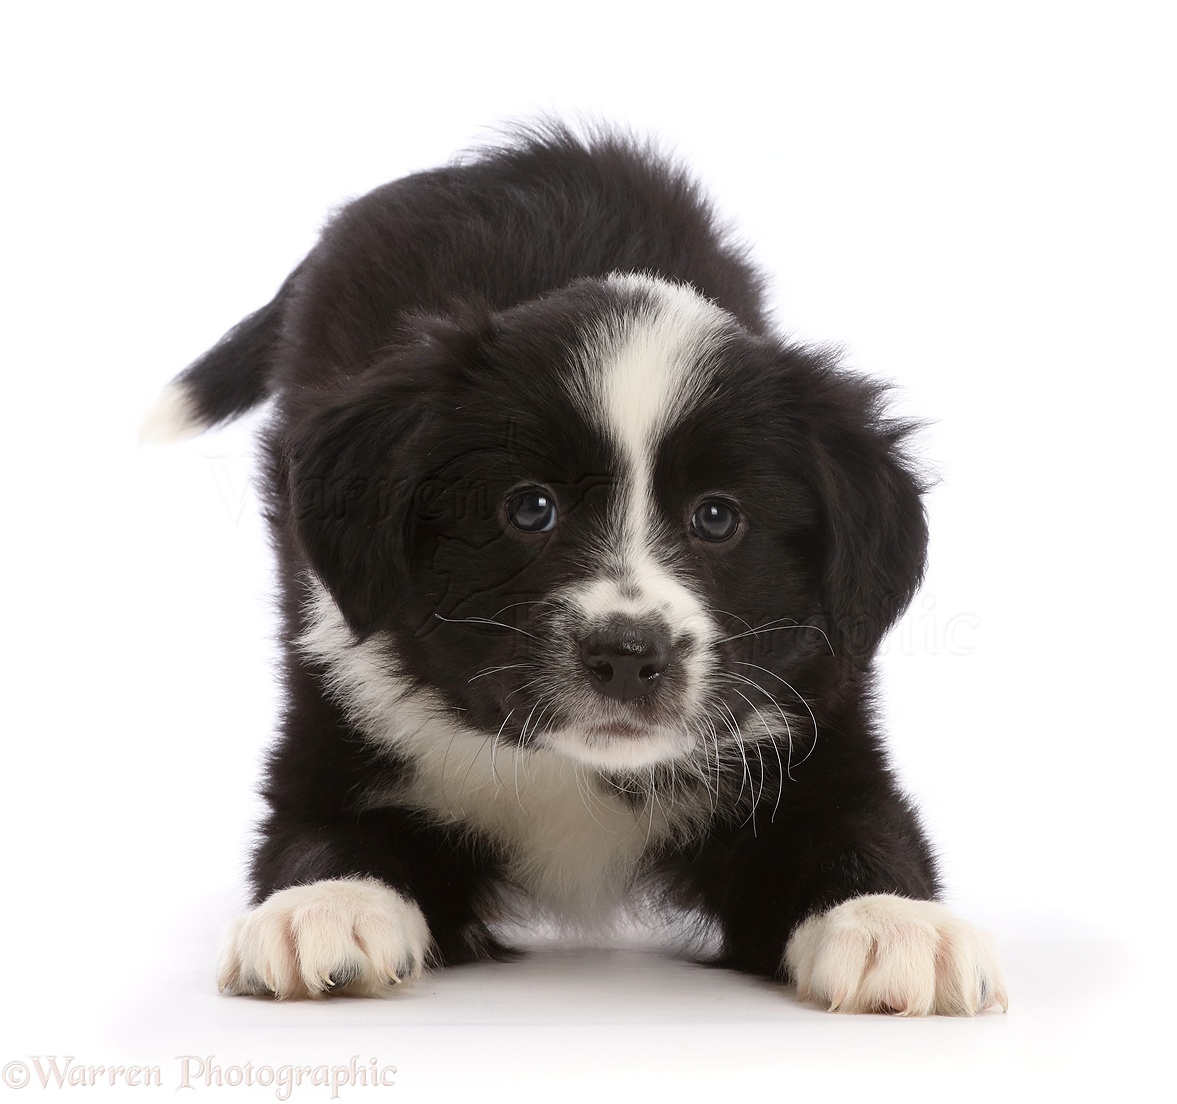 dog black and white border collie puppy in play bow photo wp45801